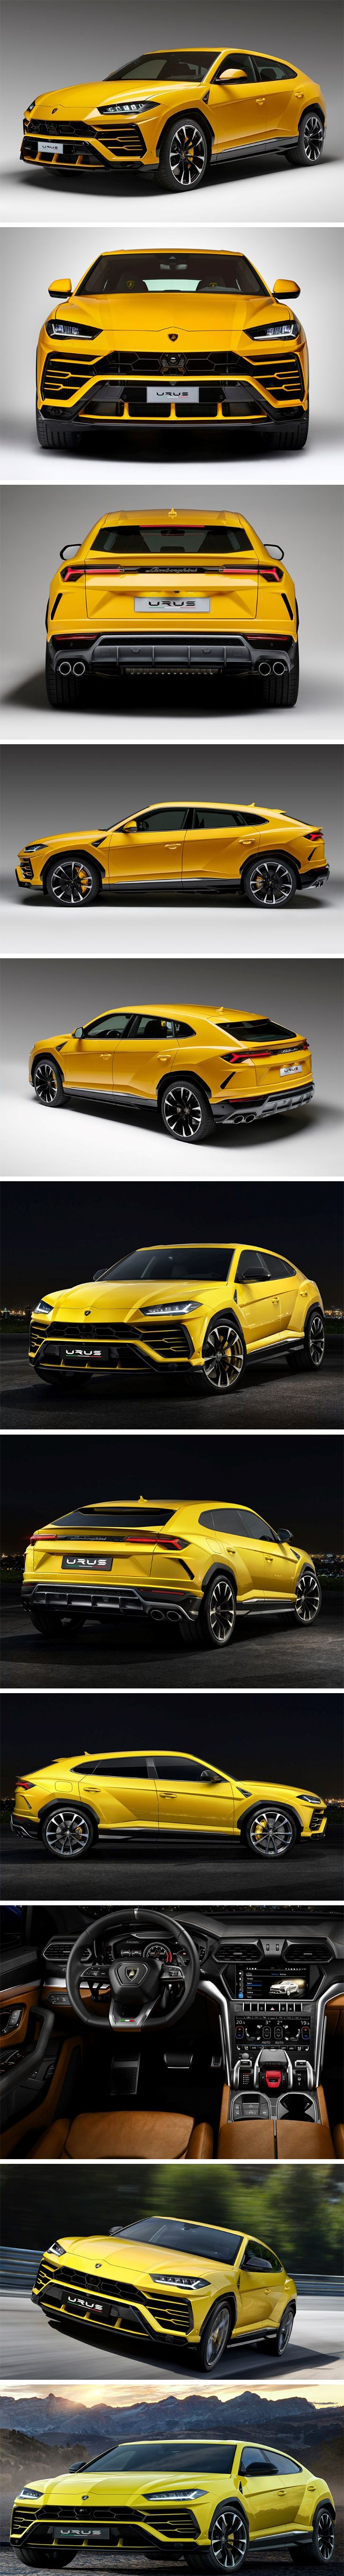 The Urus has been a long time coming! Especially since it's initial reveal in 2012, Lamborghini casually dropped hints every few years, indicating a 2018 release and here we are now, with the car being unveiled in full grandeur… touted as one of the few Lamborghini cars with 4 seats… and a car that the company calls the world's first Super Sports Utility Vehicle (SSUV).